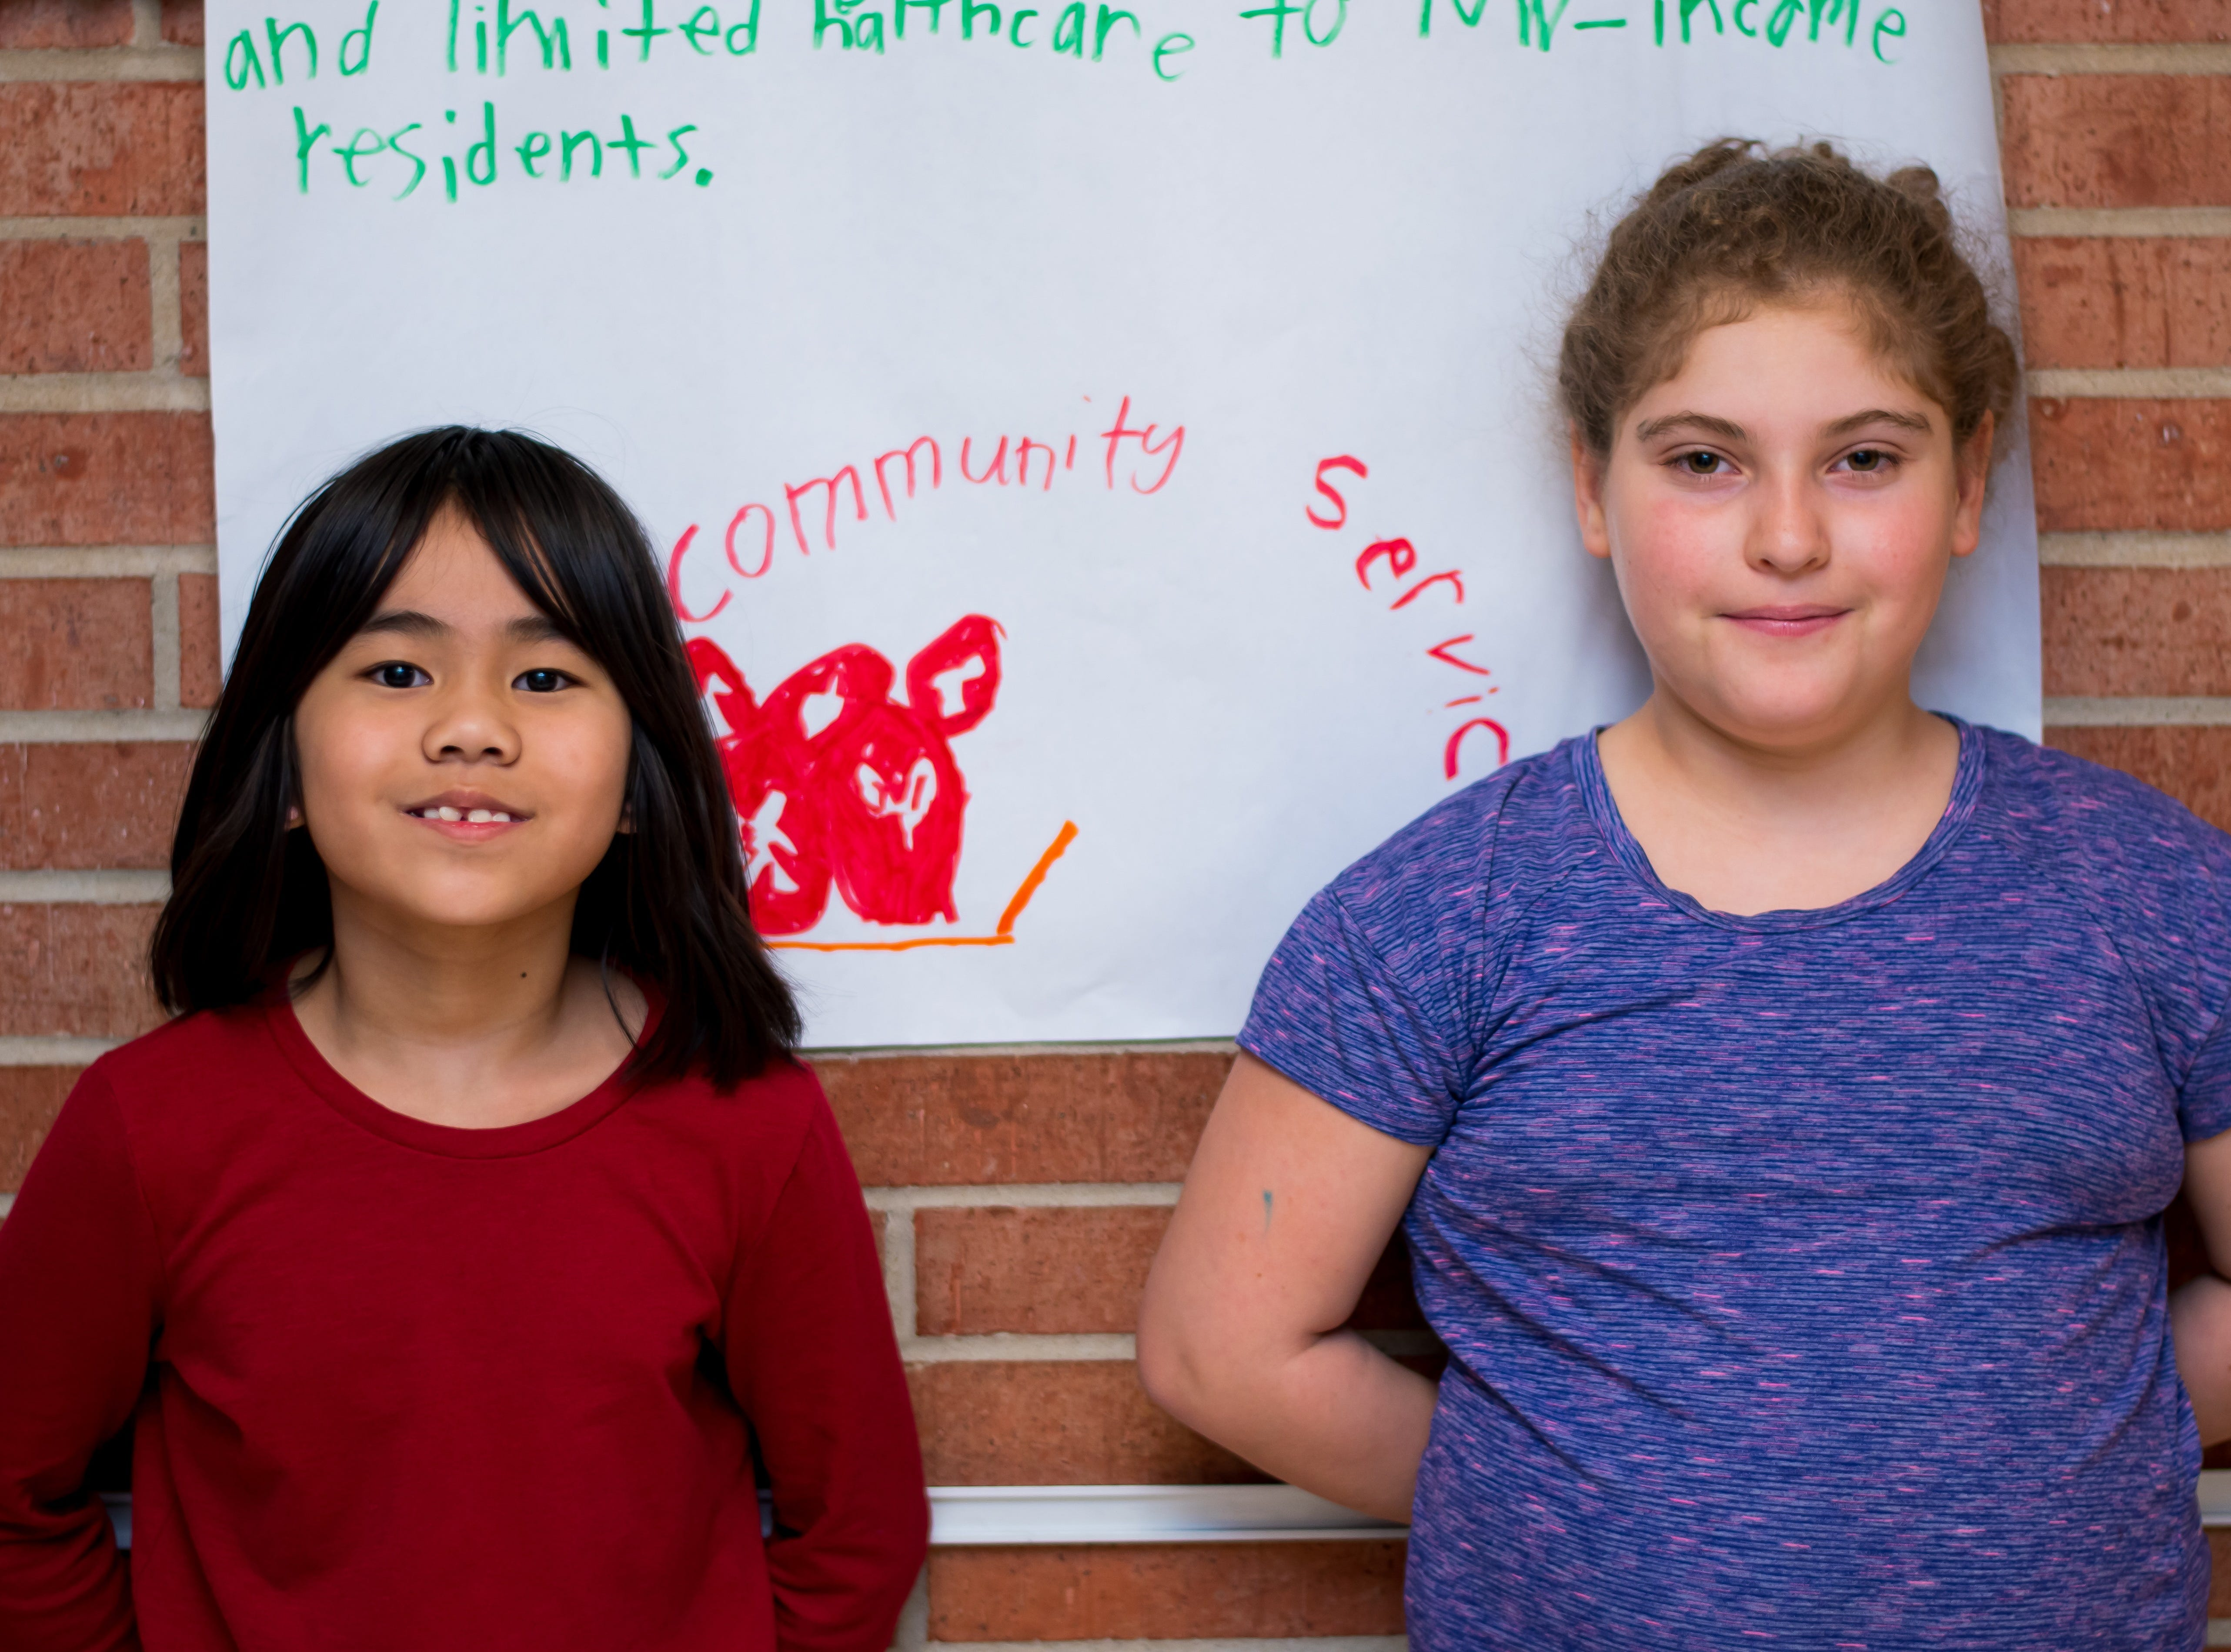 Linda Da, 8, and Maddy Sanchez, 9, both of Clive are ready to read their parts at the Celebrate Crestview event on Tuesday, Dec. 11, 2018 at Crestview School of Inquiry in Clive. Students learned the history of immigration in Clive and the impact it has had on Crestview.